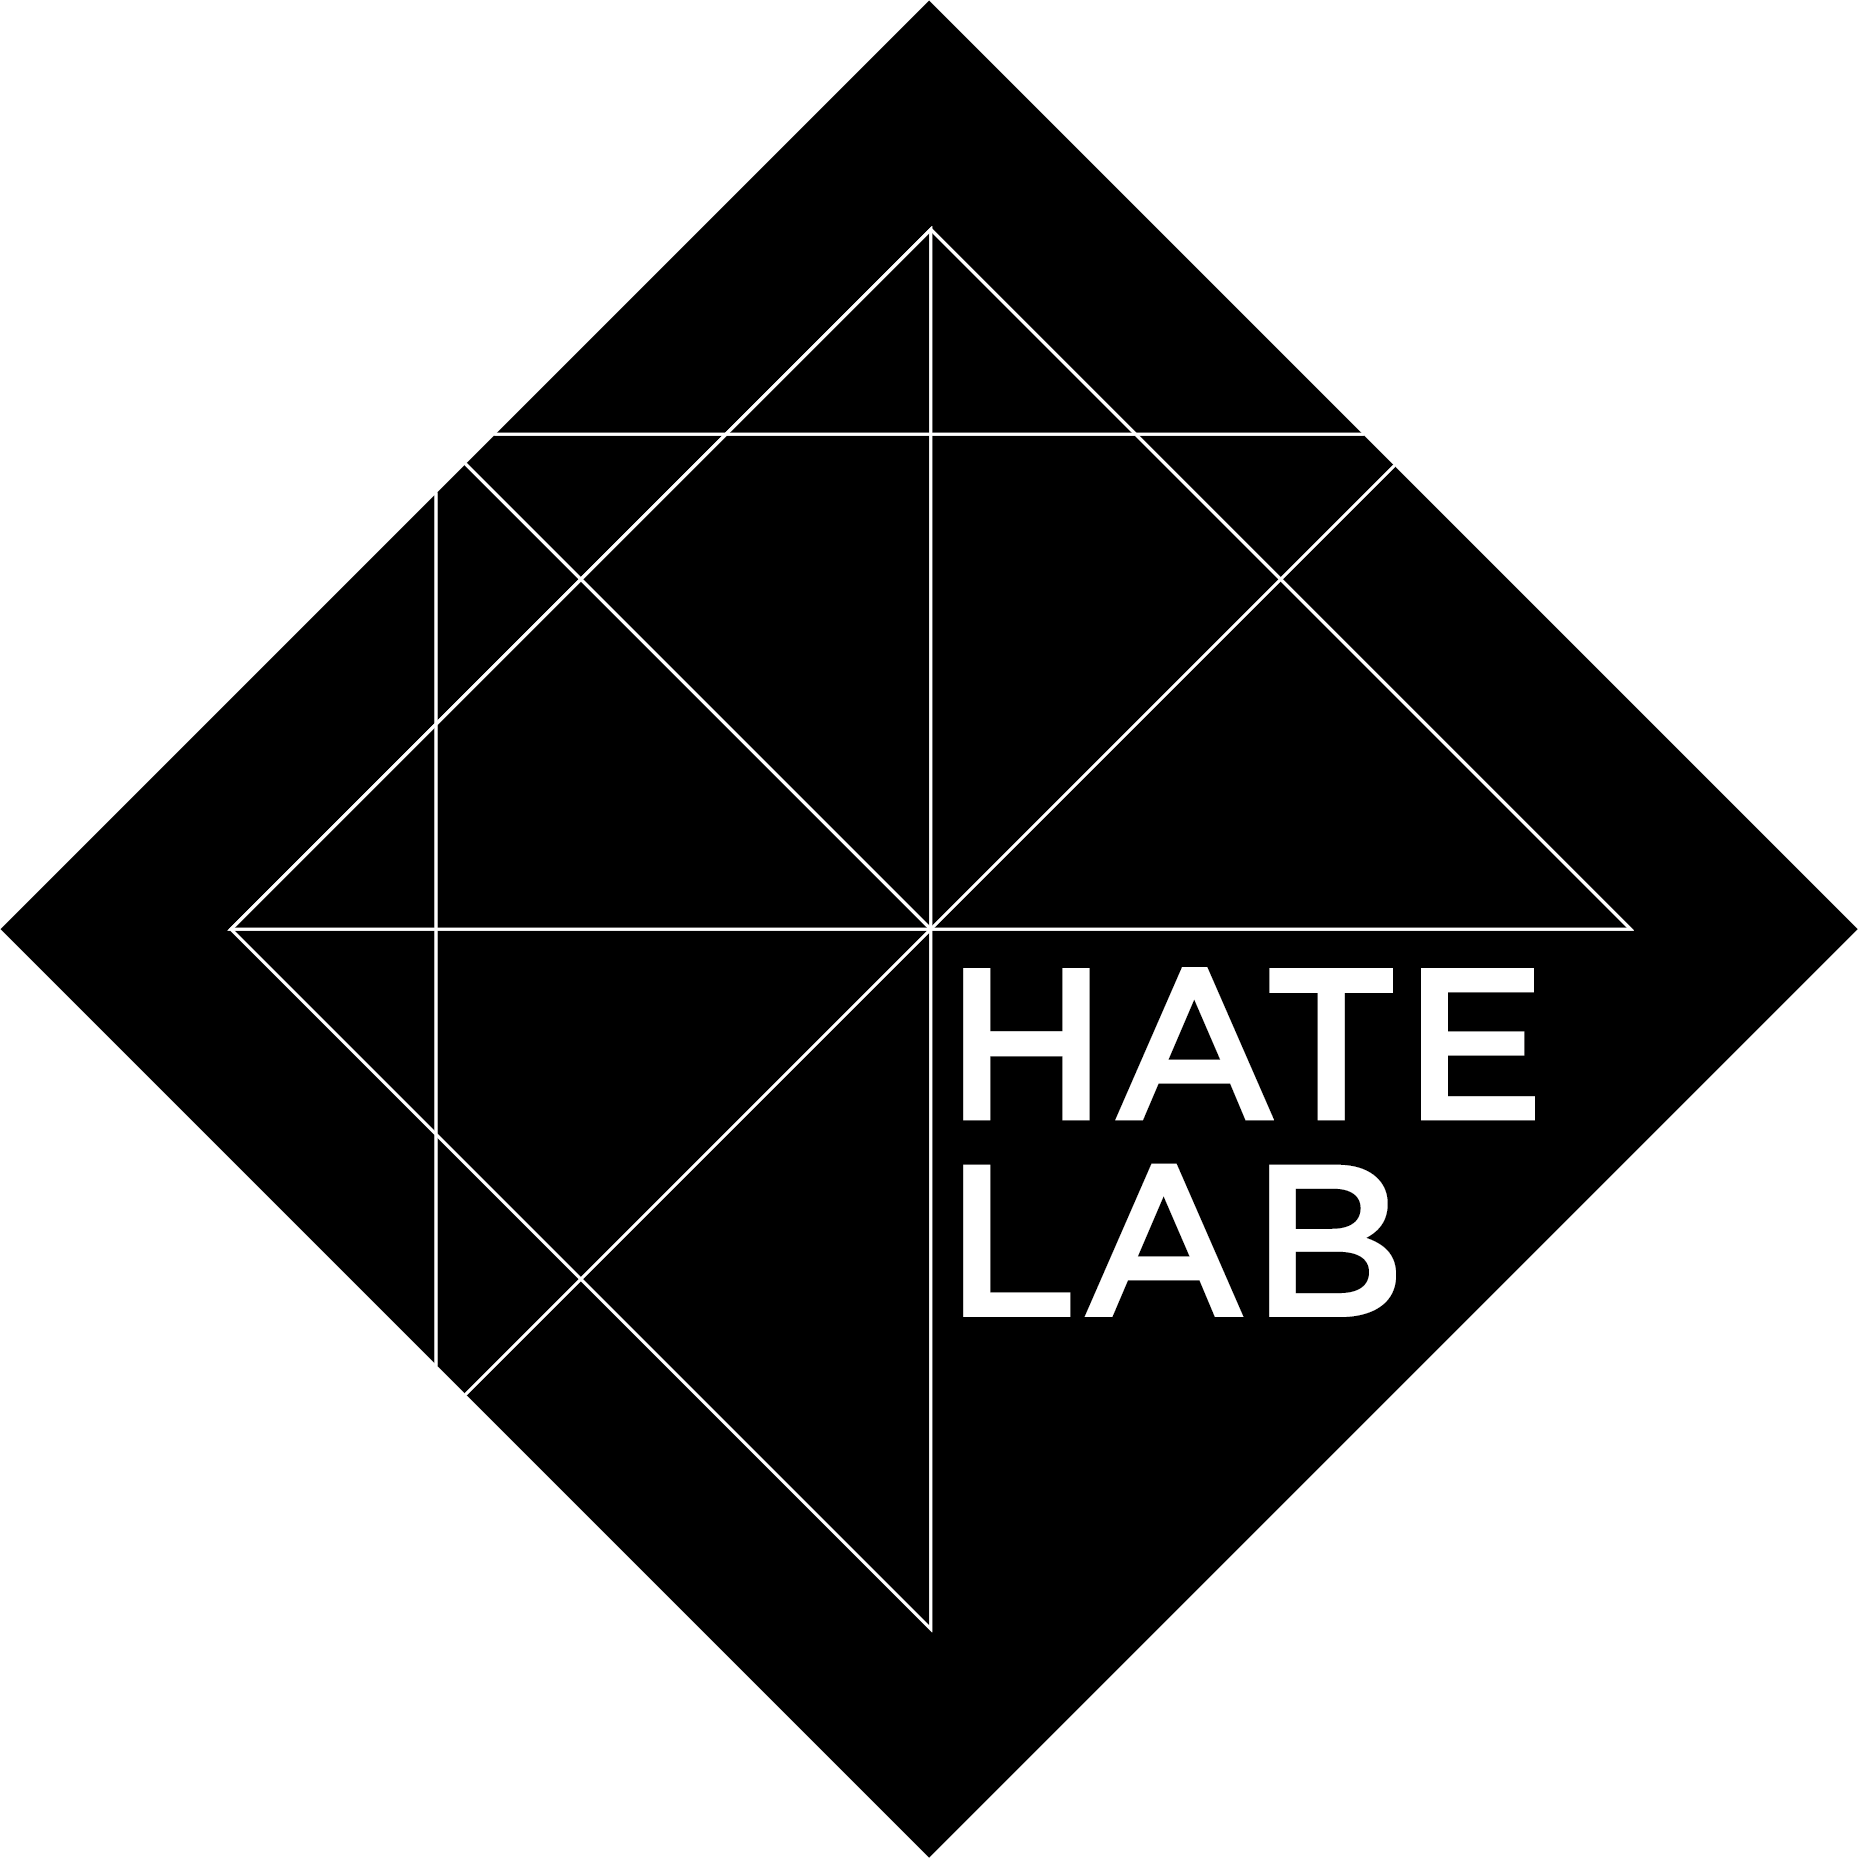 Hate Lab logo